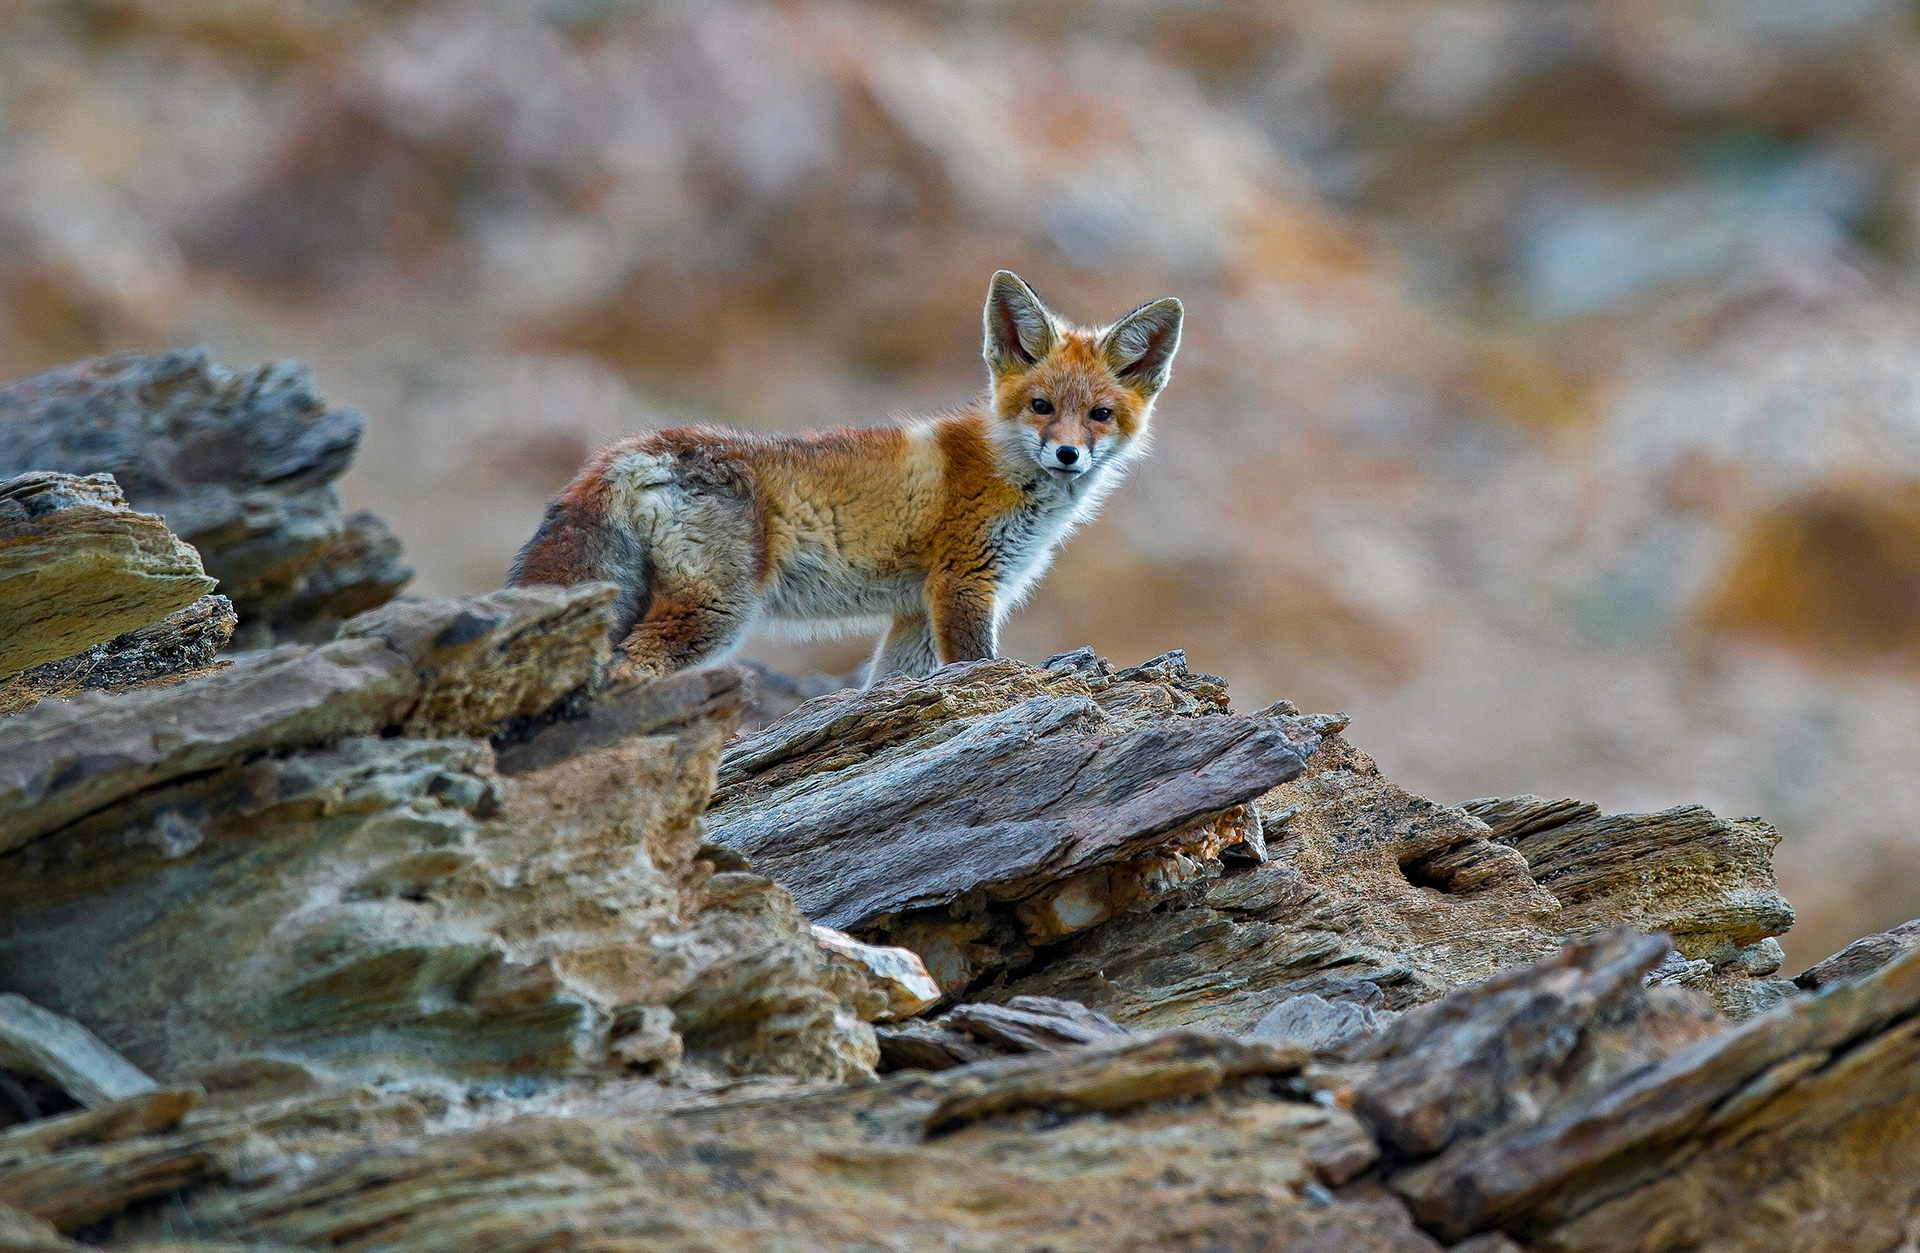 Active at night, the red fox is mostly a loner, at best roaming in mating pairs, in the sandy wastelands and sand dunes of the semi-arid Changthang.